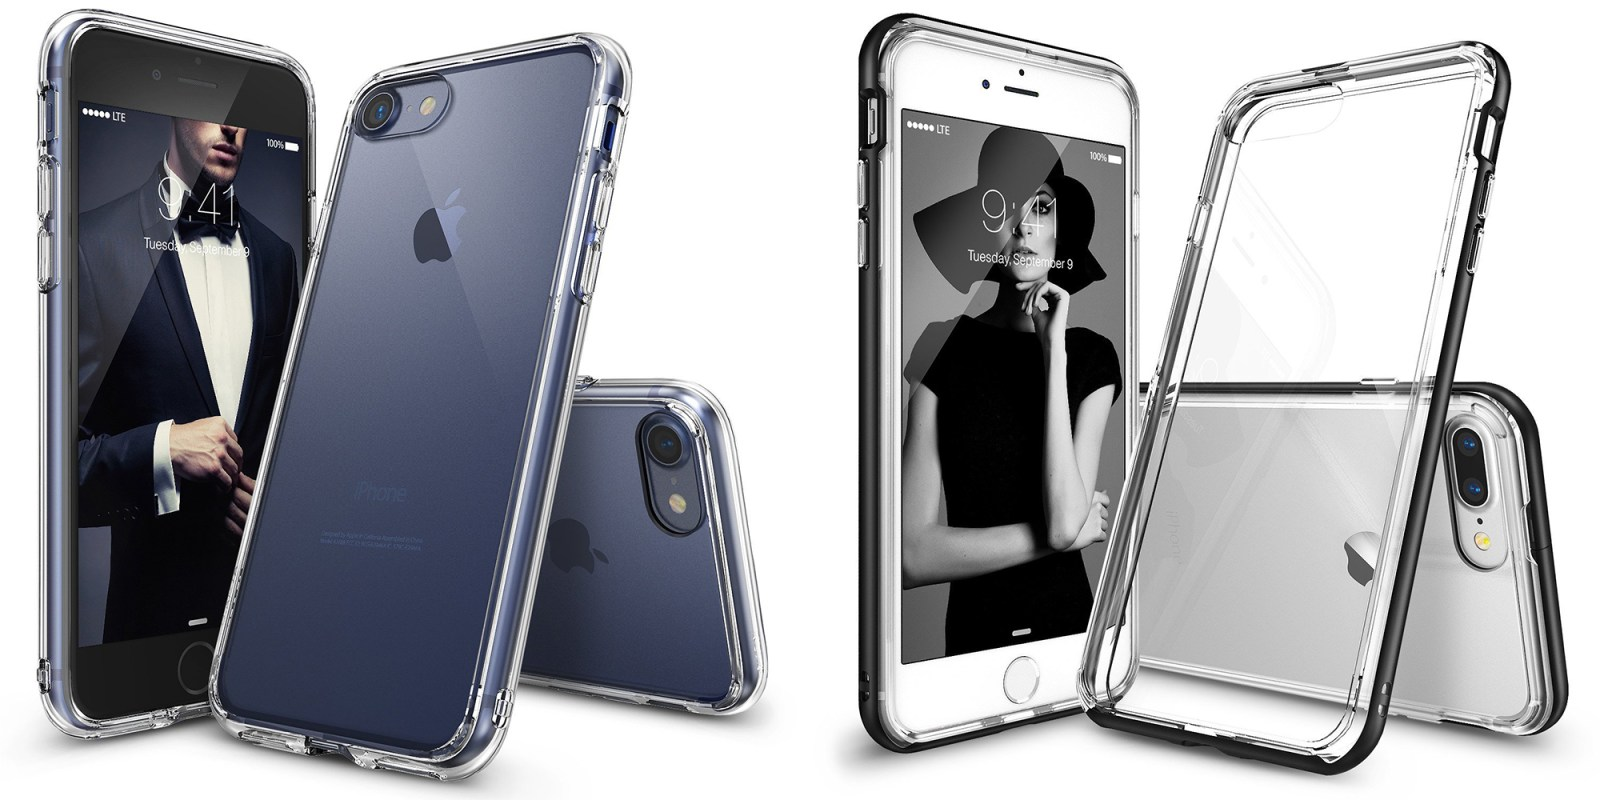 The new iPhone 7/Plus is coming next week, here's a slew of Spigen & Ringke cases for $1 shipped to get you ready